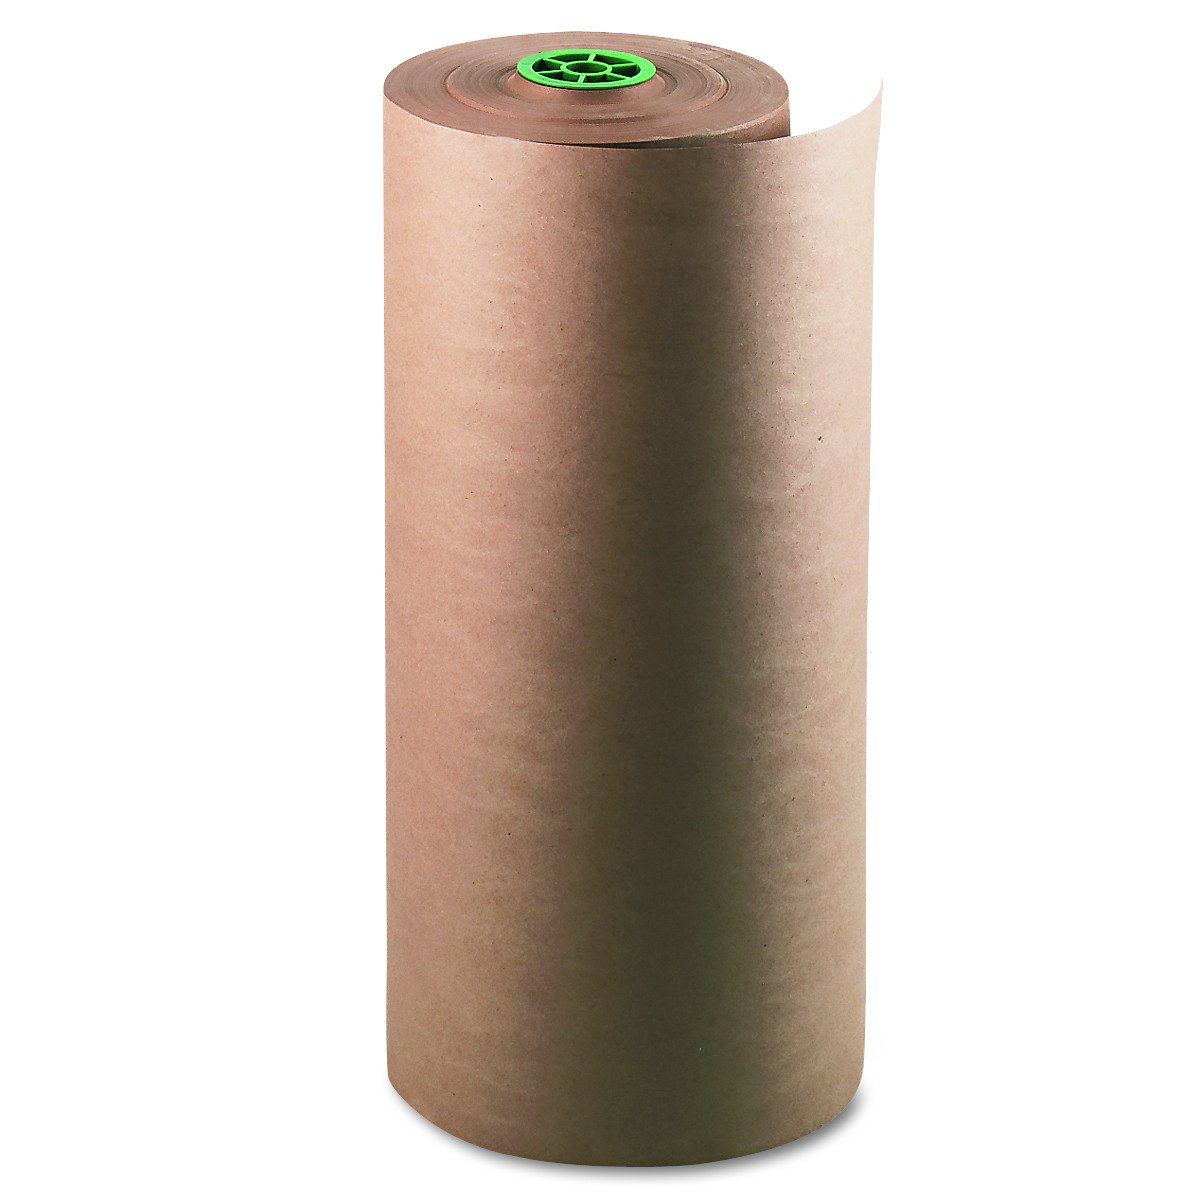 Pacon 5824 Kraft Paper Roll, 50 lbs., 24'' x 1000 ft, Natural by PACON